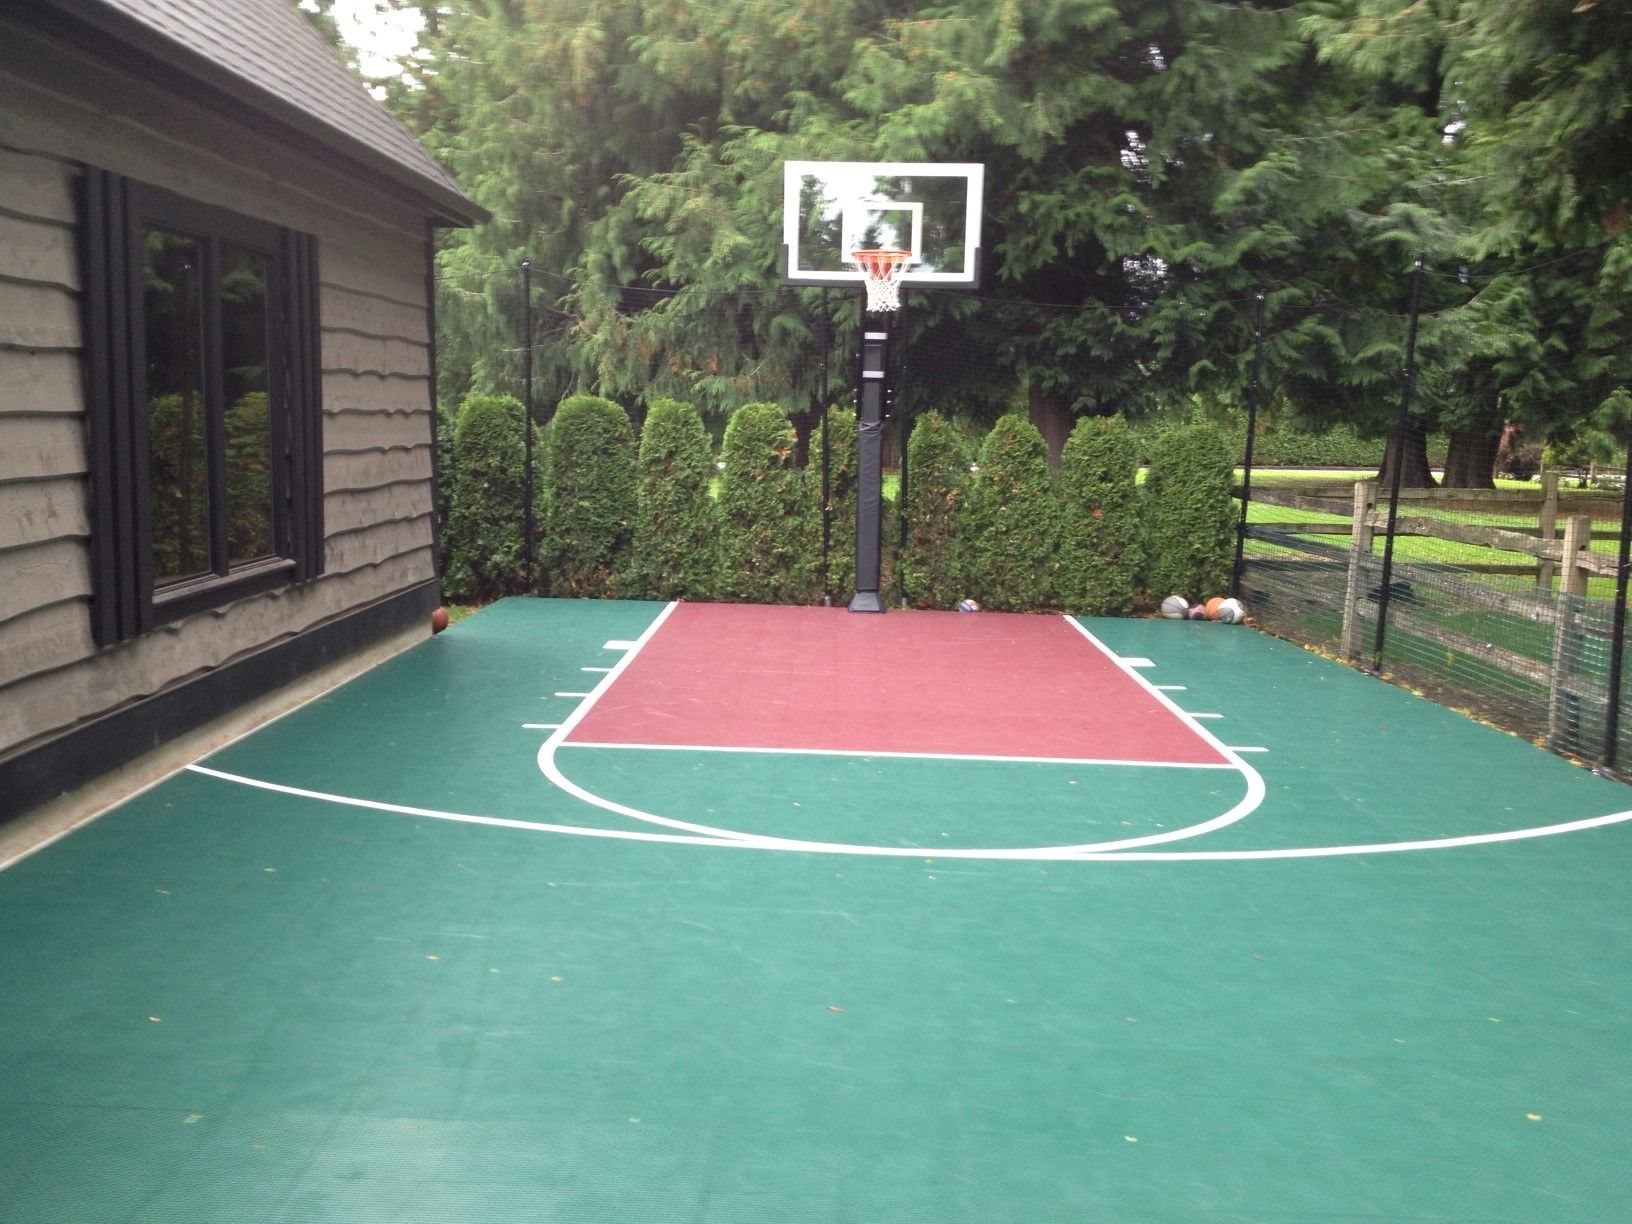 Merveilleux This Custom Teal Colored Court Is Home To A Pro Dunk Gold Basketball System  Here In